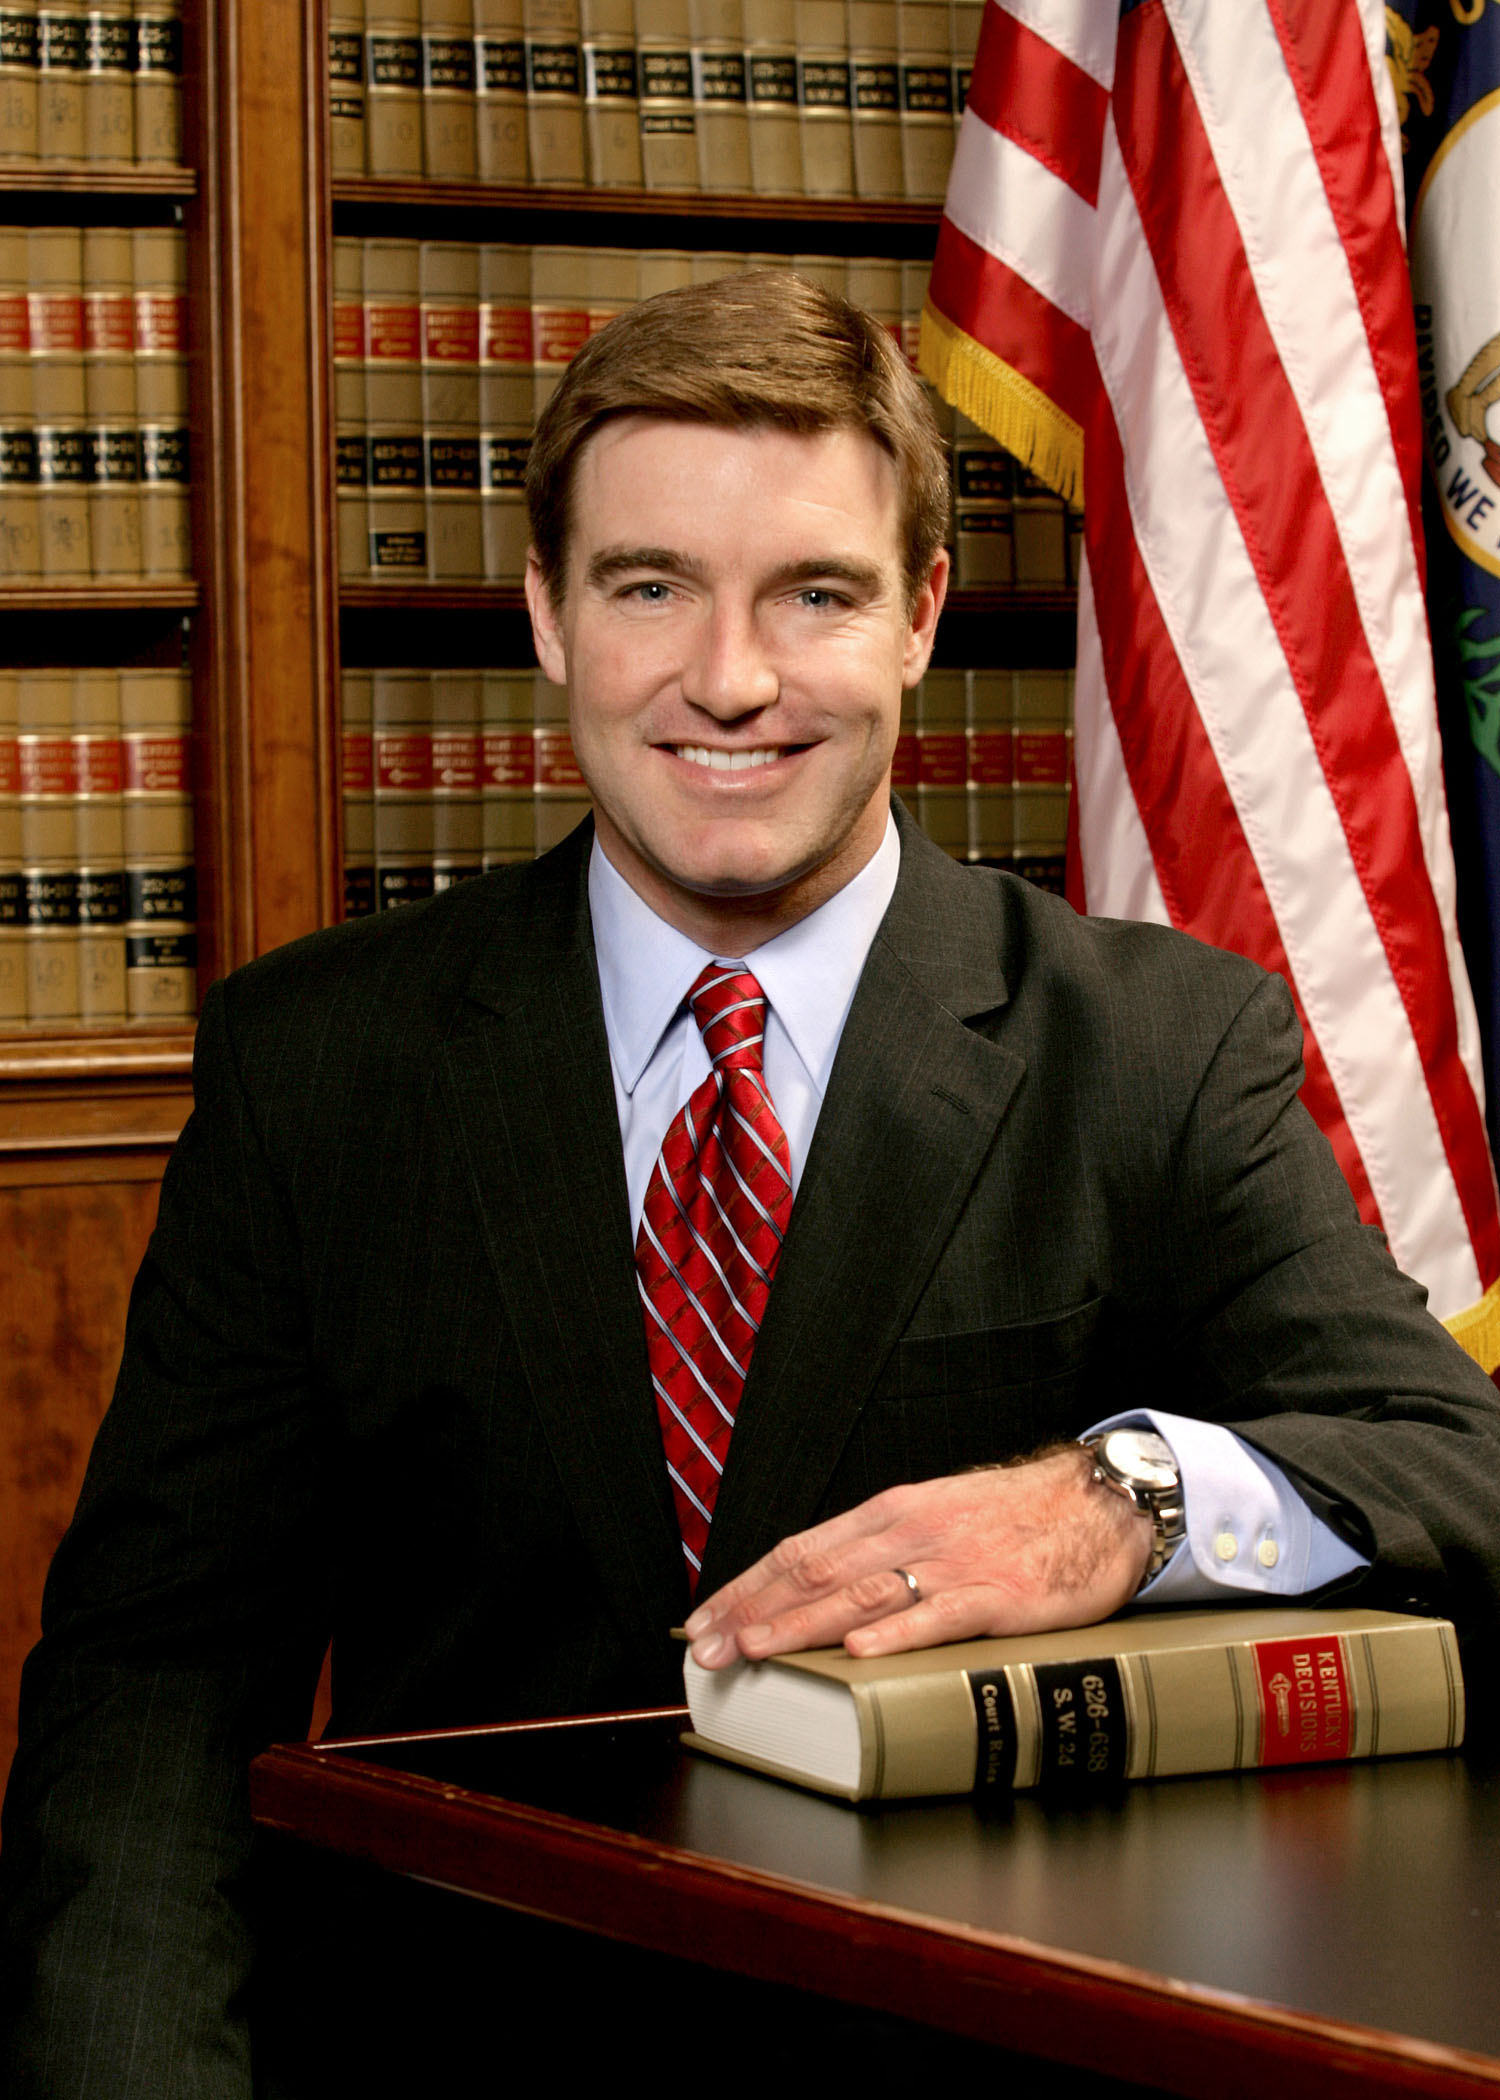 Attorney - US flag and bookshelf full of legal books in the background